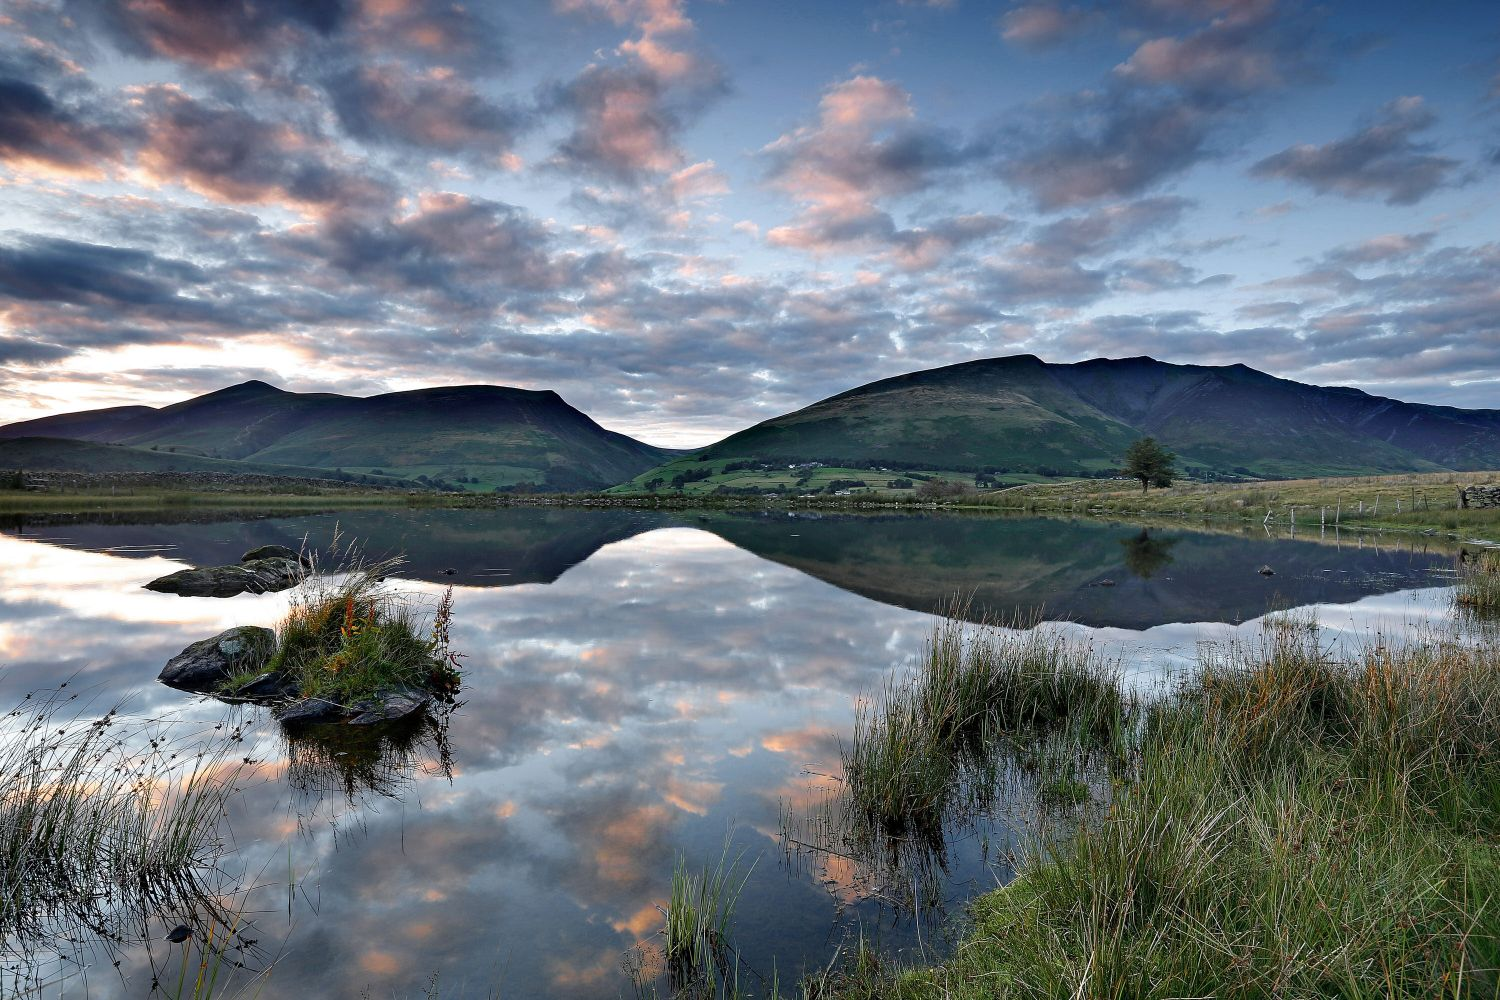 Skiddaw and Blencathra reflections in Tewet Tarn